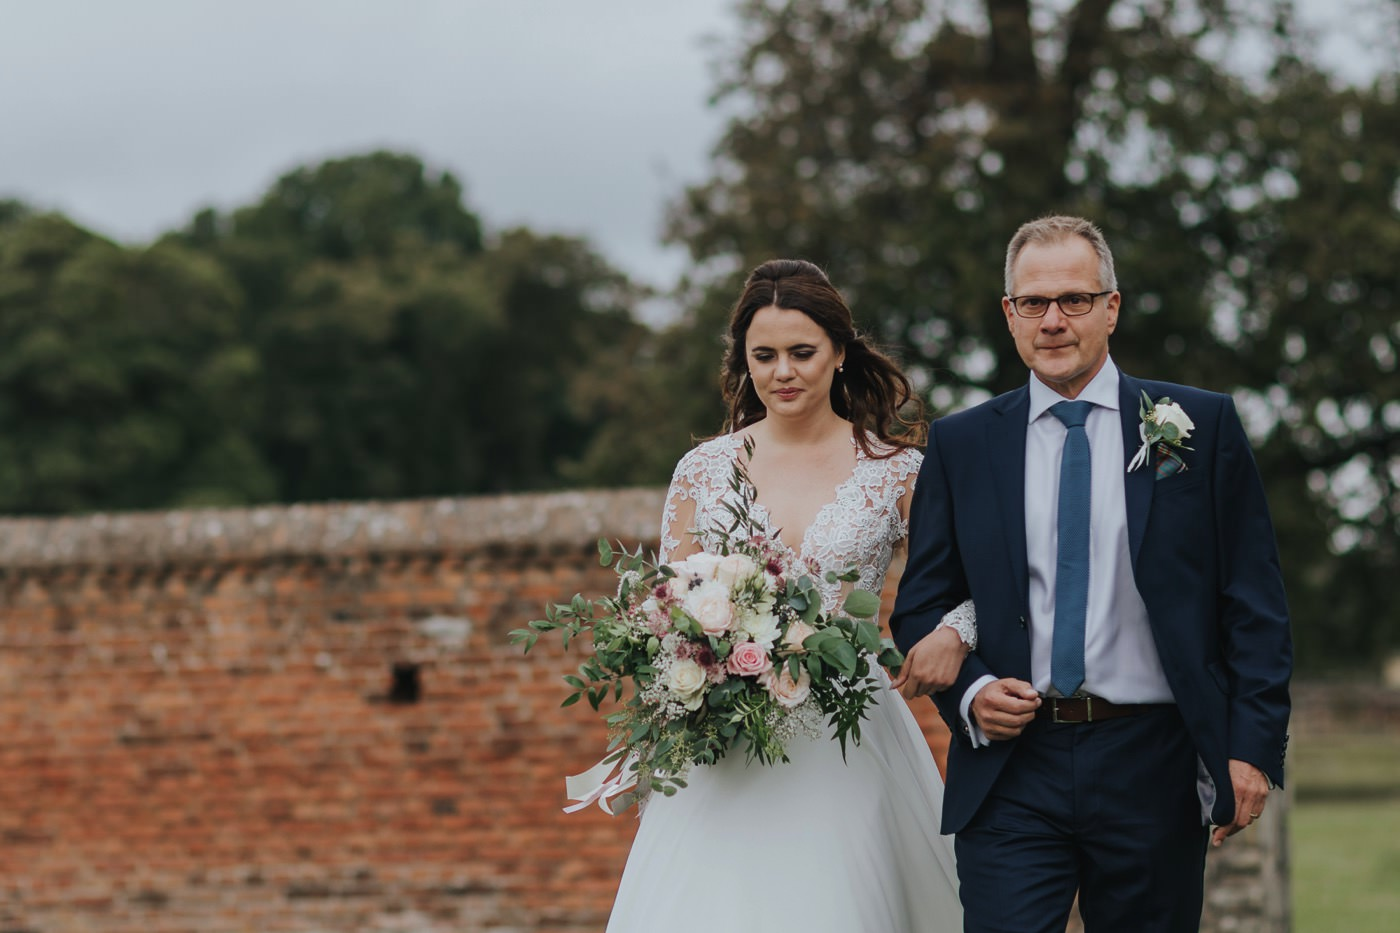 Steve & Tiffany | Bradgate Park wedding 54